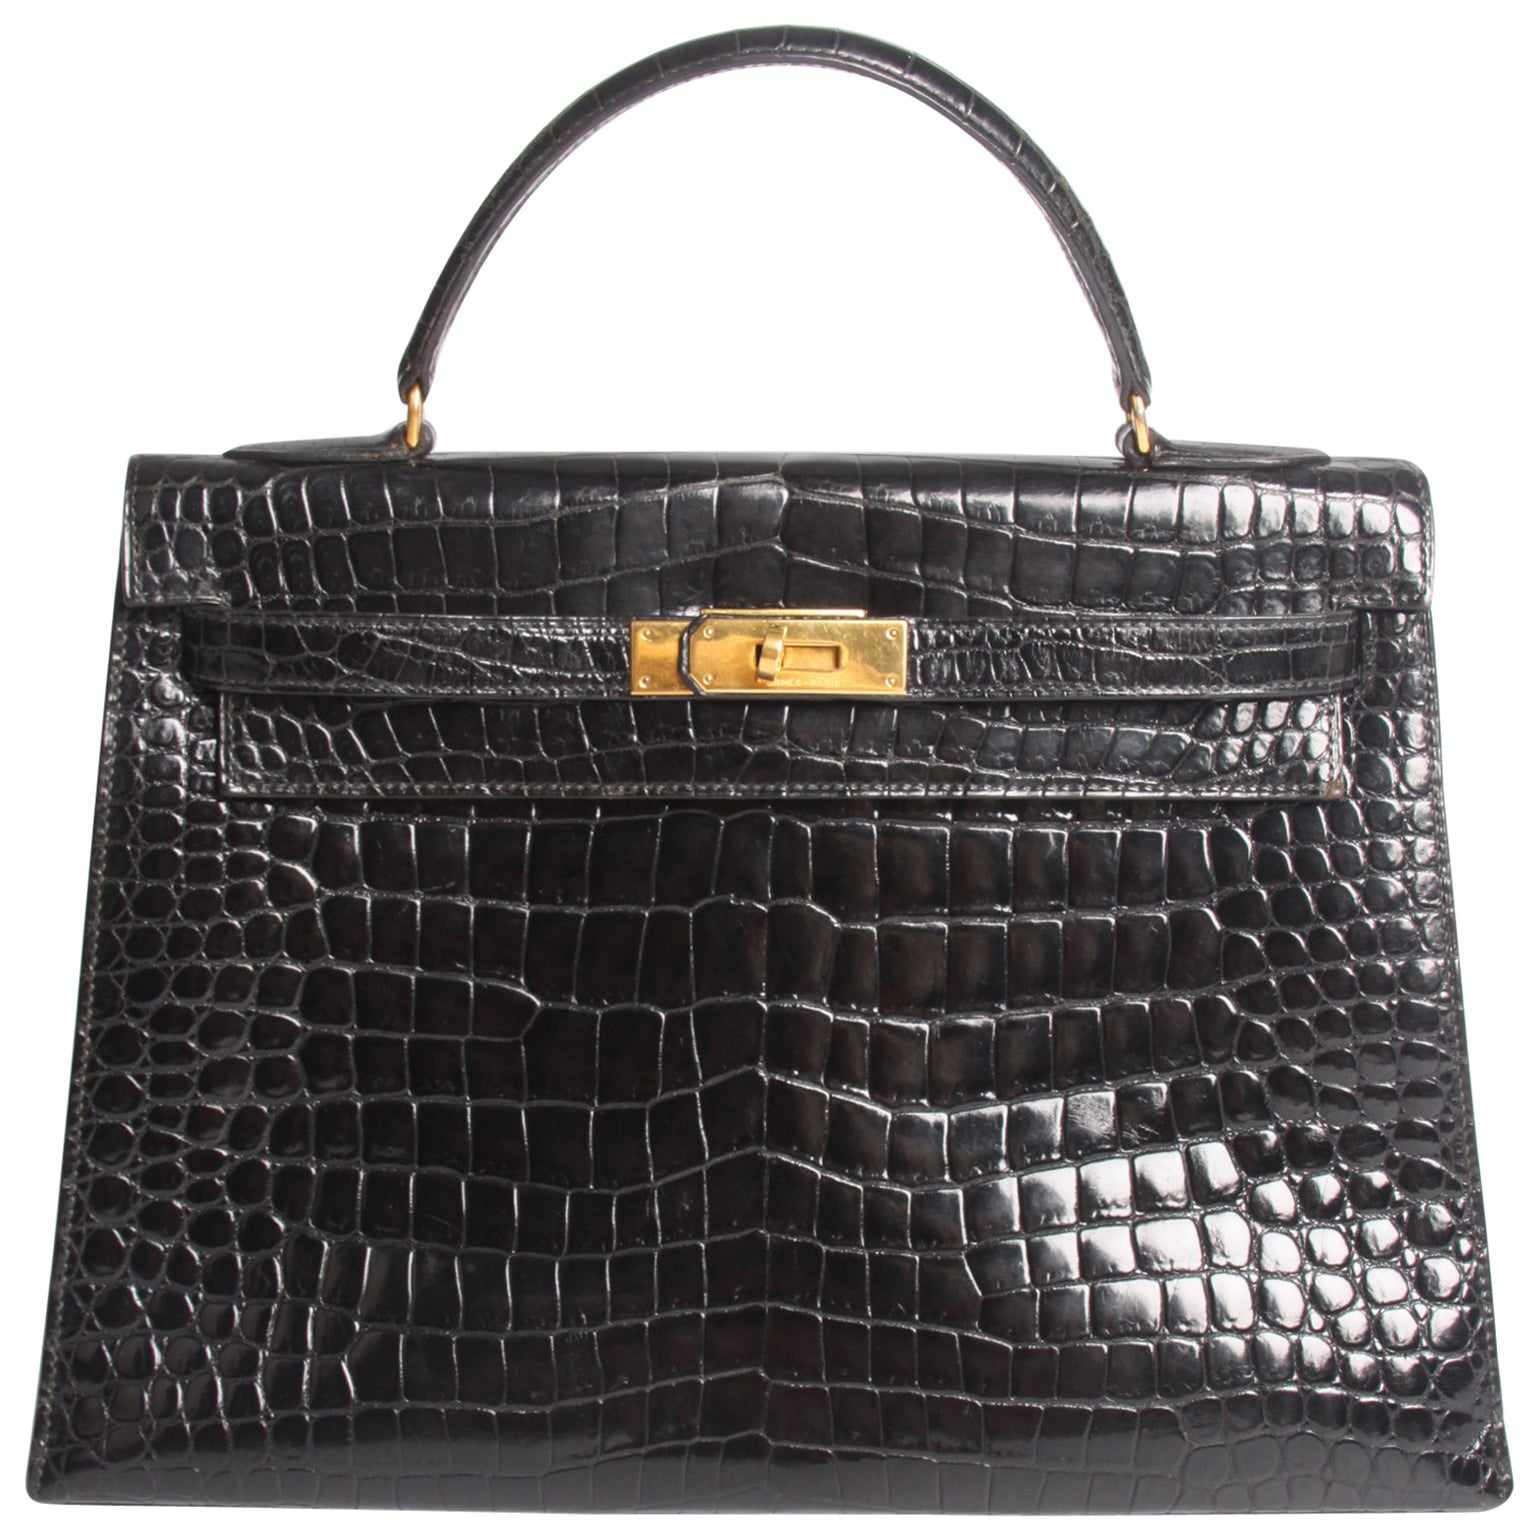 4310f01b3f34f Hermes Kelly 32 Crocodile Leather Bag - black-collector s item and very  very rar at 1stdibs